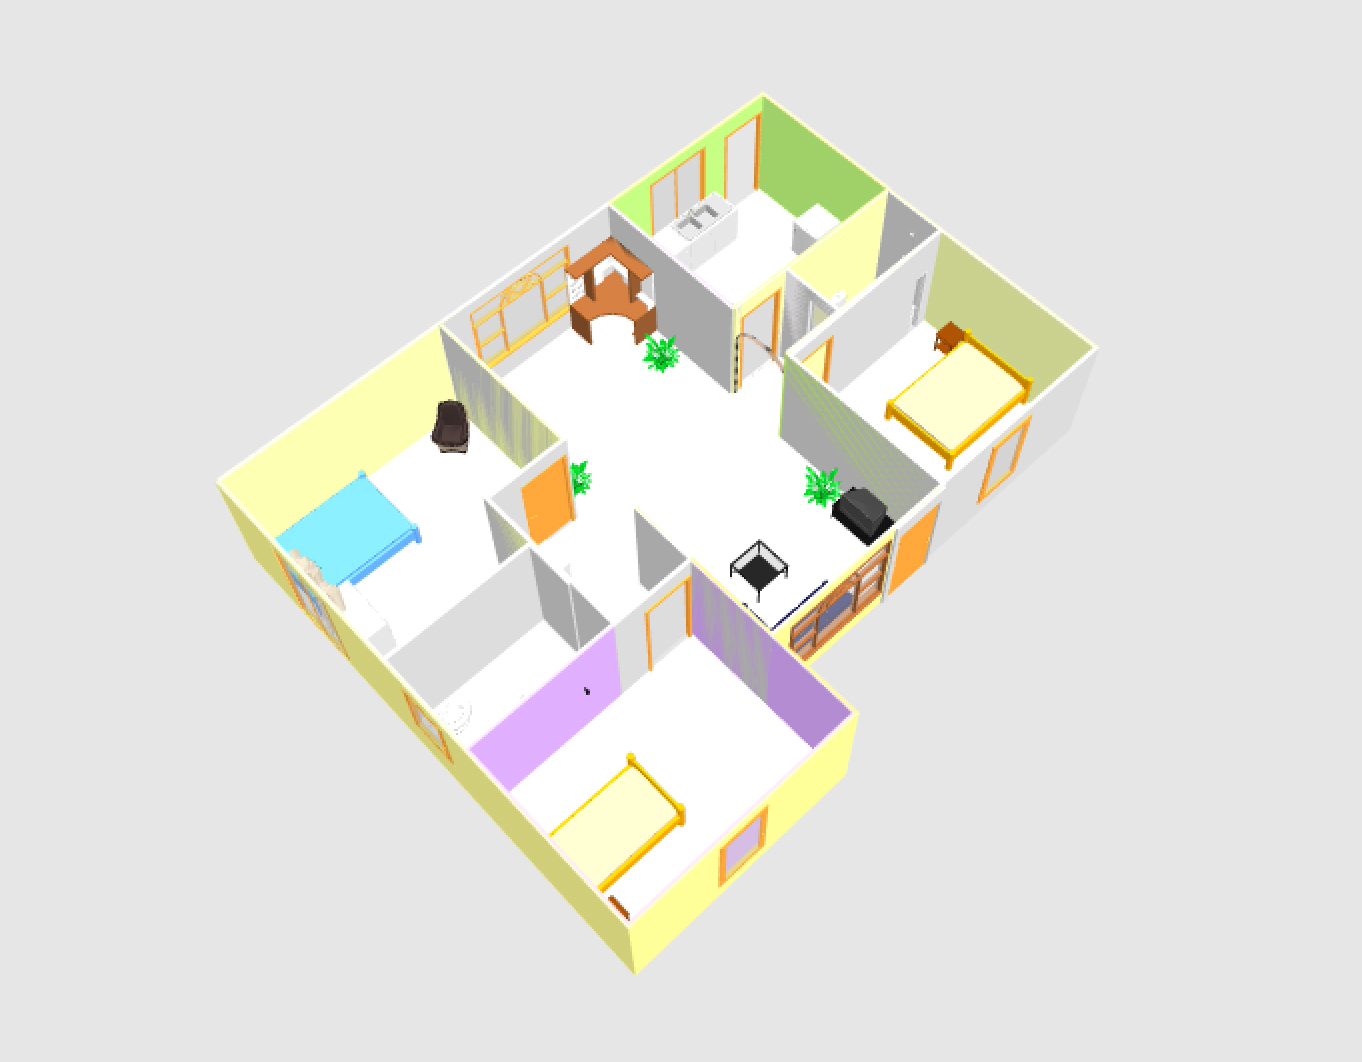 Three bed room 3d house plan with dwg cad file free download for 3d house images free download